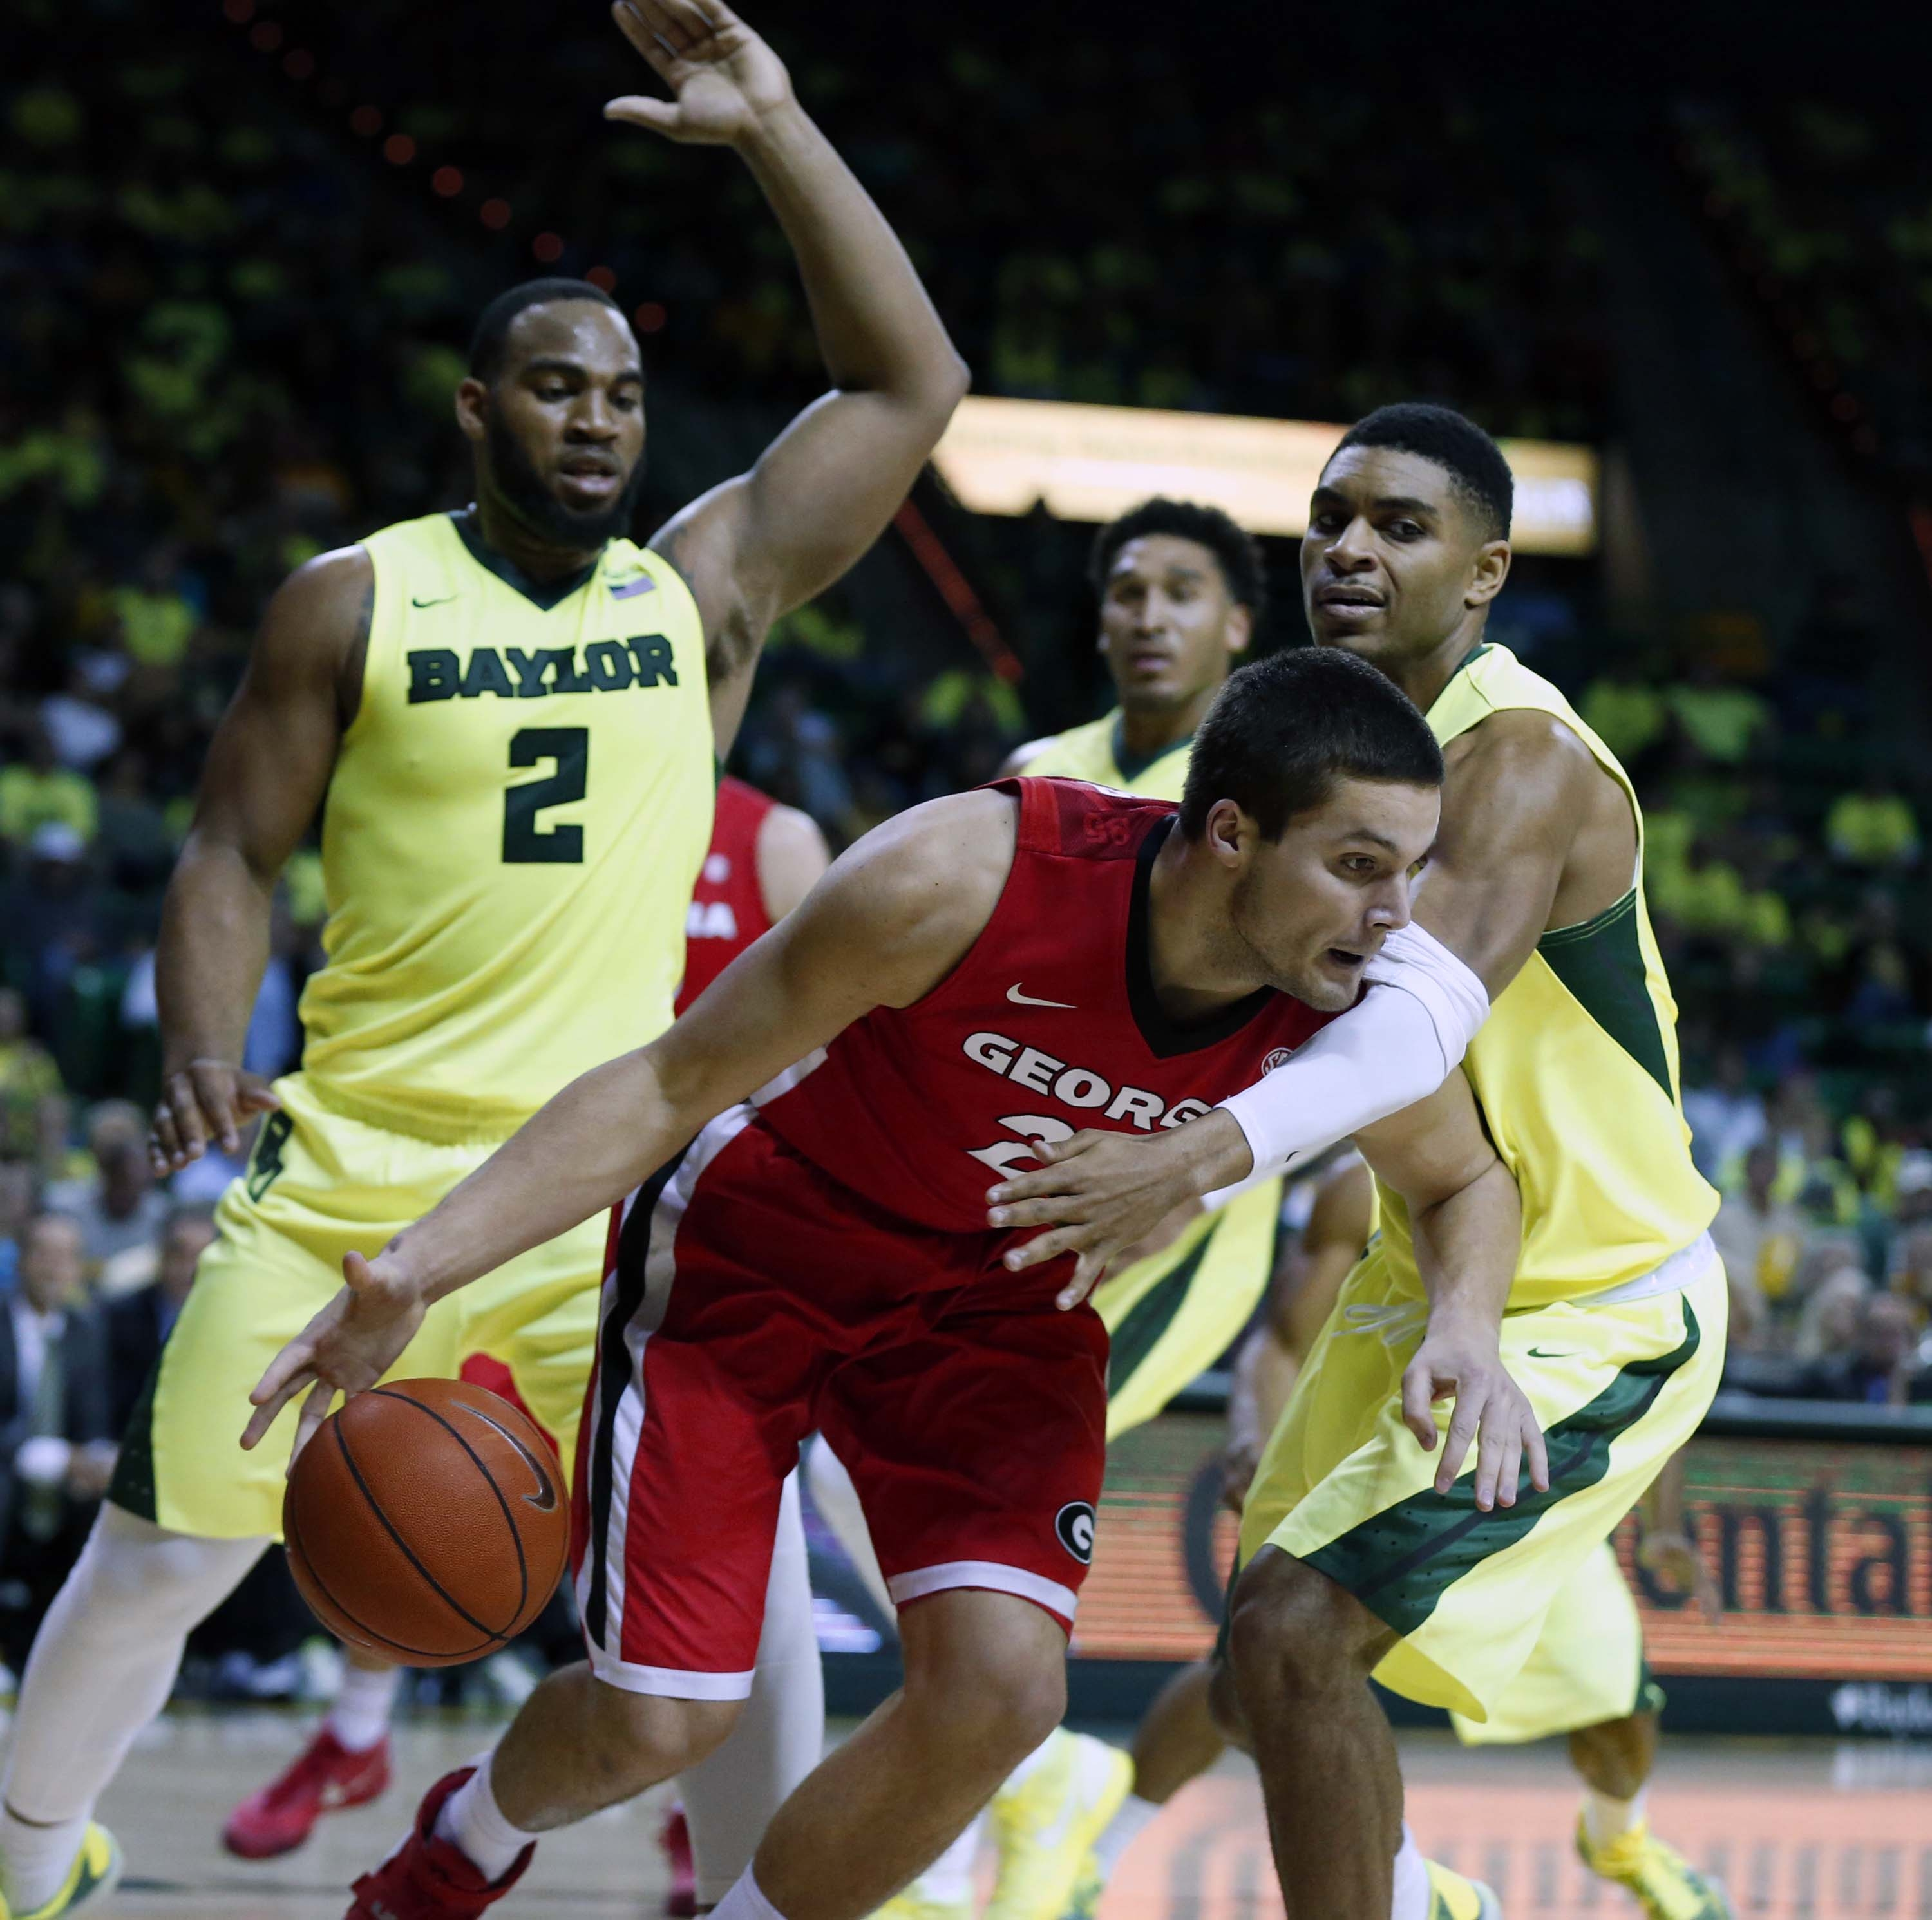 Georgia forward Houston Kessler (24) is pressured by Baylor guard Al Freeman (25), right, in the first half of an NCAA college basketball game, Saturday, Jan. 30, 2016, in Waco, Texas. Looking on is Baylor forward Rico Gathers (2). (Rod Aydelotte/Waco Tri